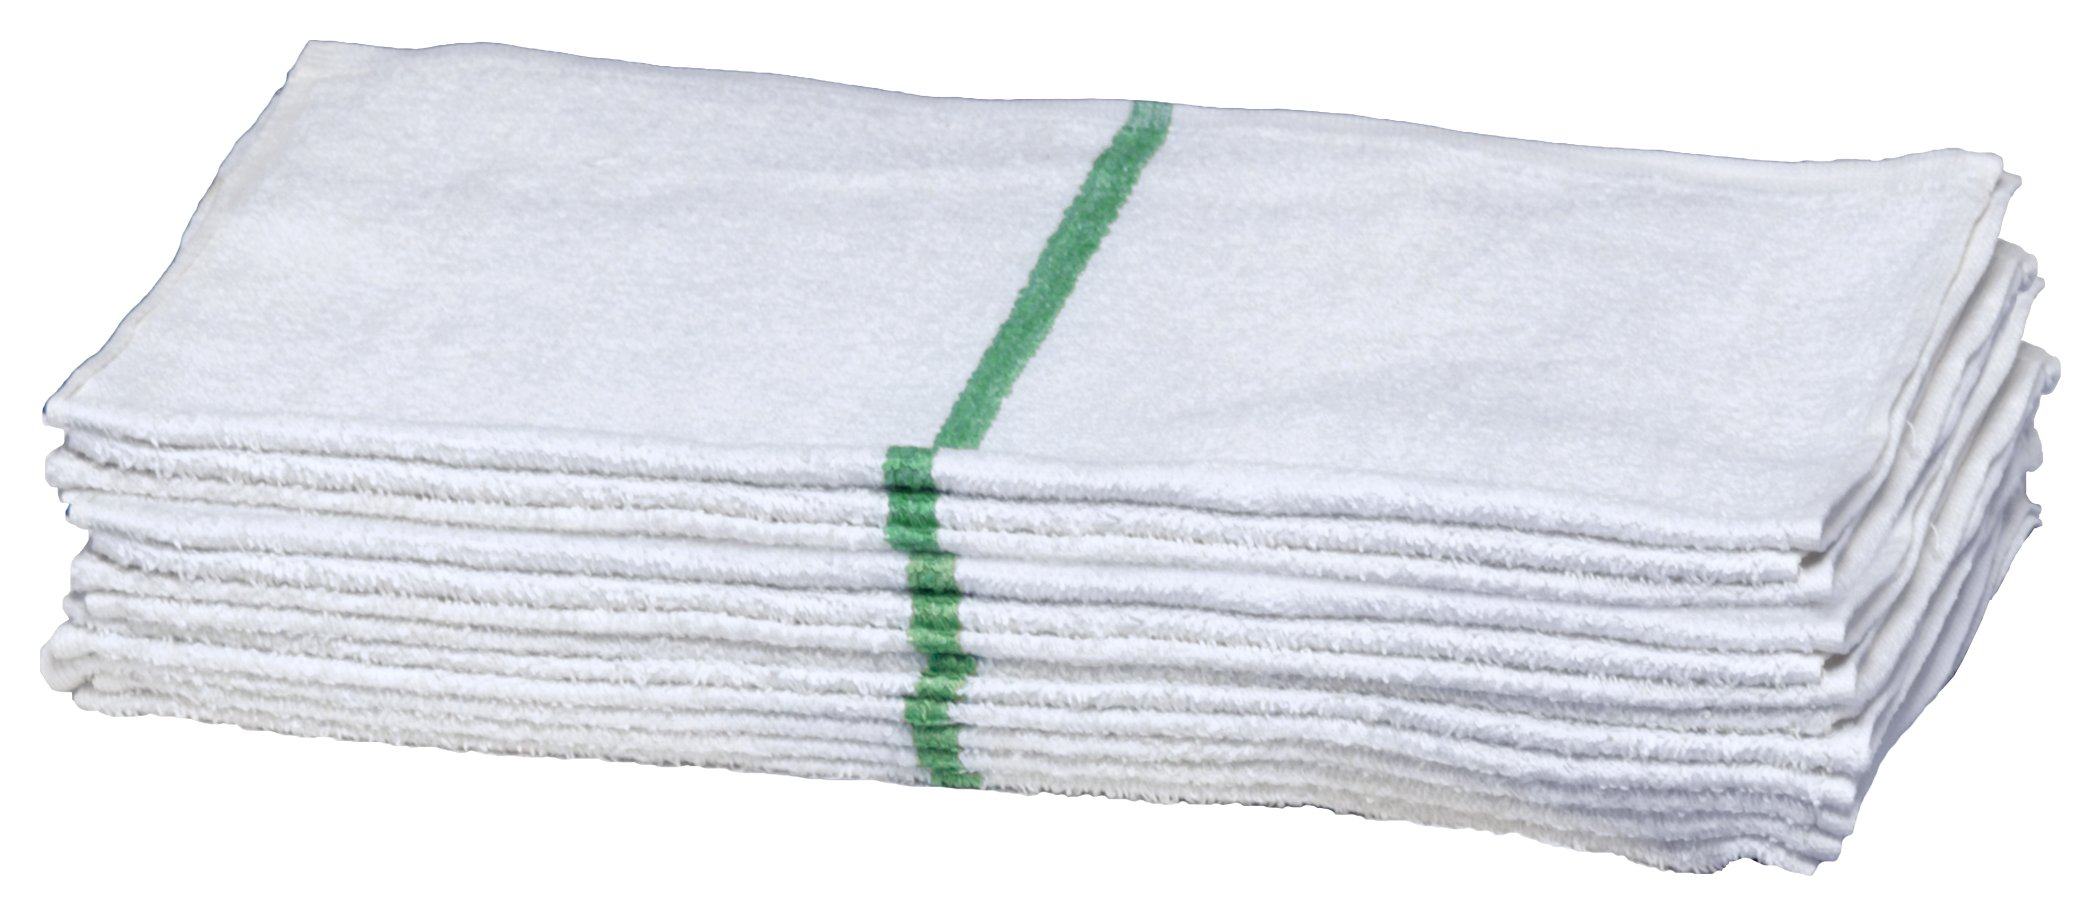 Pro-Clean Basics A51764 Striped Bar Towel, 16'' x 19'', Green (Pack of 300) by Pro-Clean Basics (Image #1)